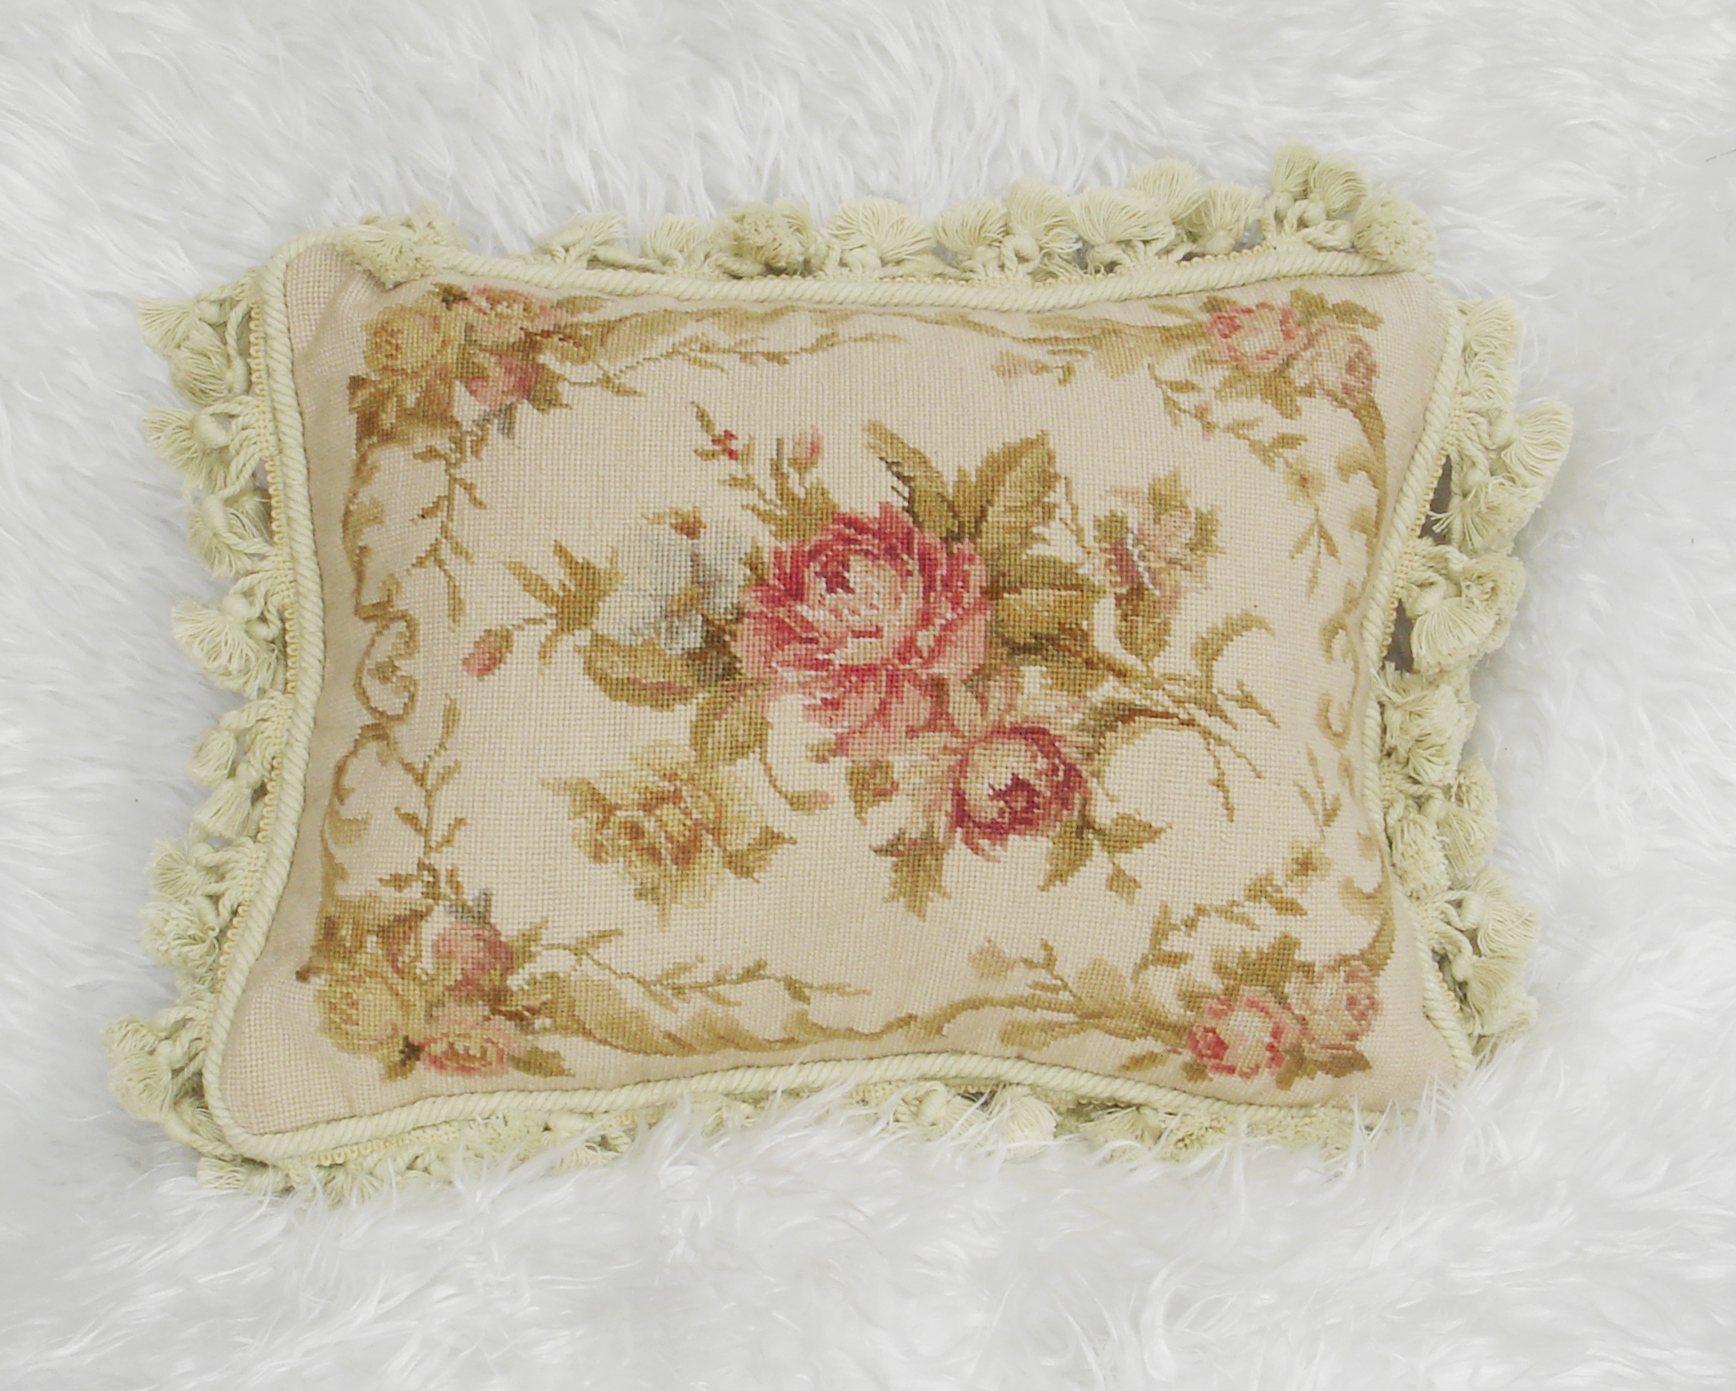 12″ x 16″ Handmade Wool Needlepoint Petit Point Cushion Cover Pillow Case 12980419